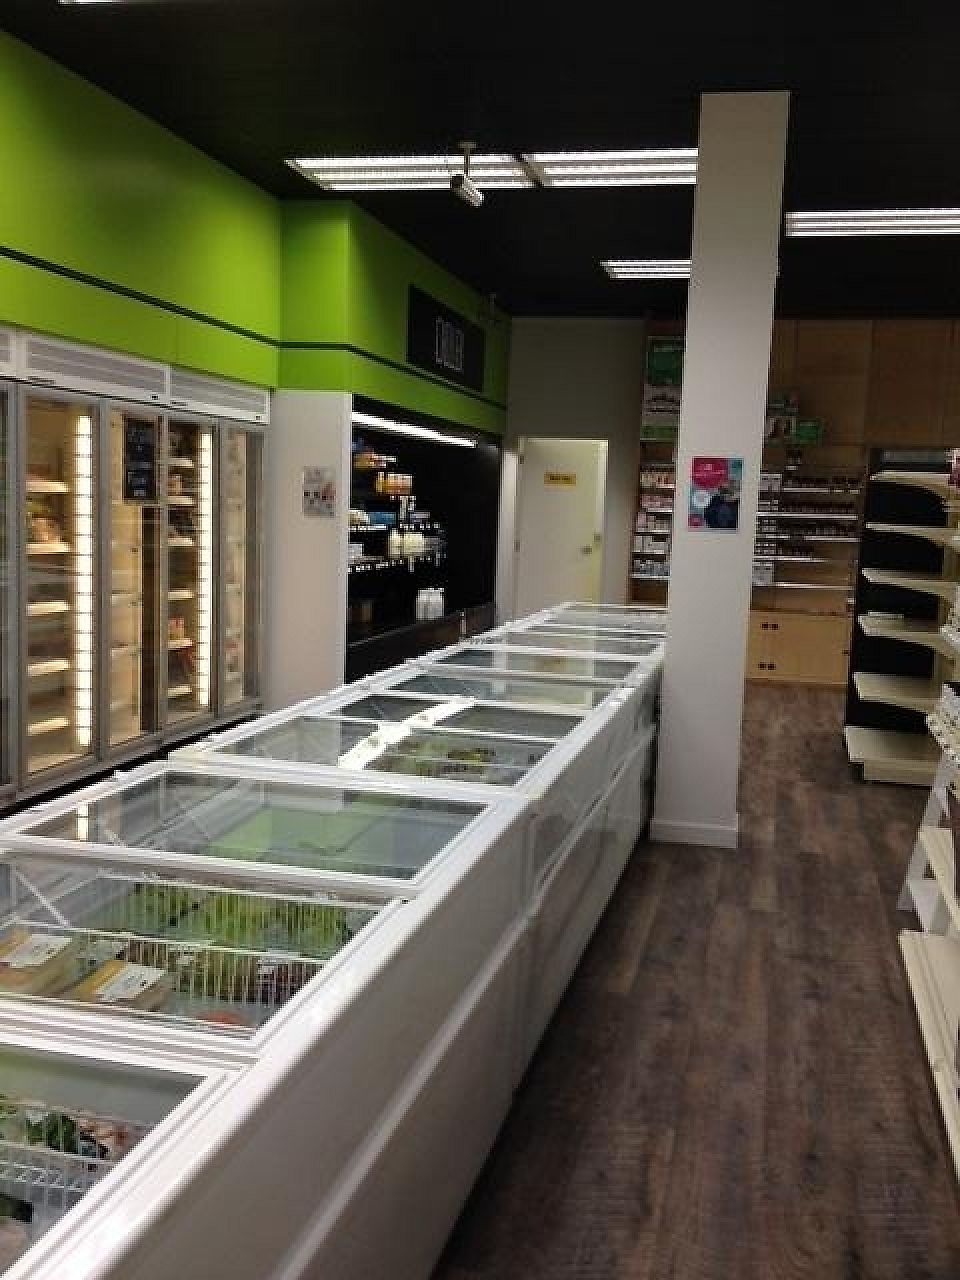 """Photo of Wholefoods Market and Health Store  by <a href=""""/members/profile/Yolanda"""">Yolanda</a> <br/>Wholefoods Market <br/> April 29, 2016  - <a href='/contact/abuse/image/72951/282879'>Report</a>"""